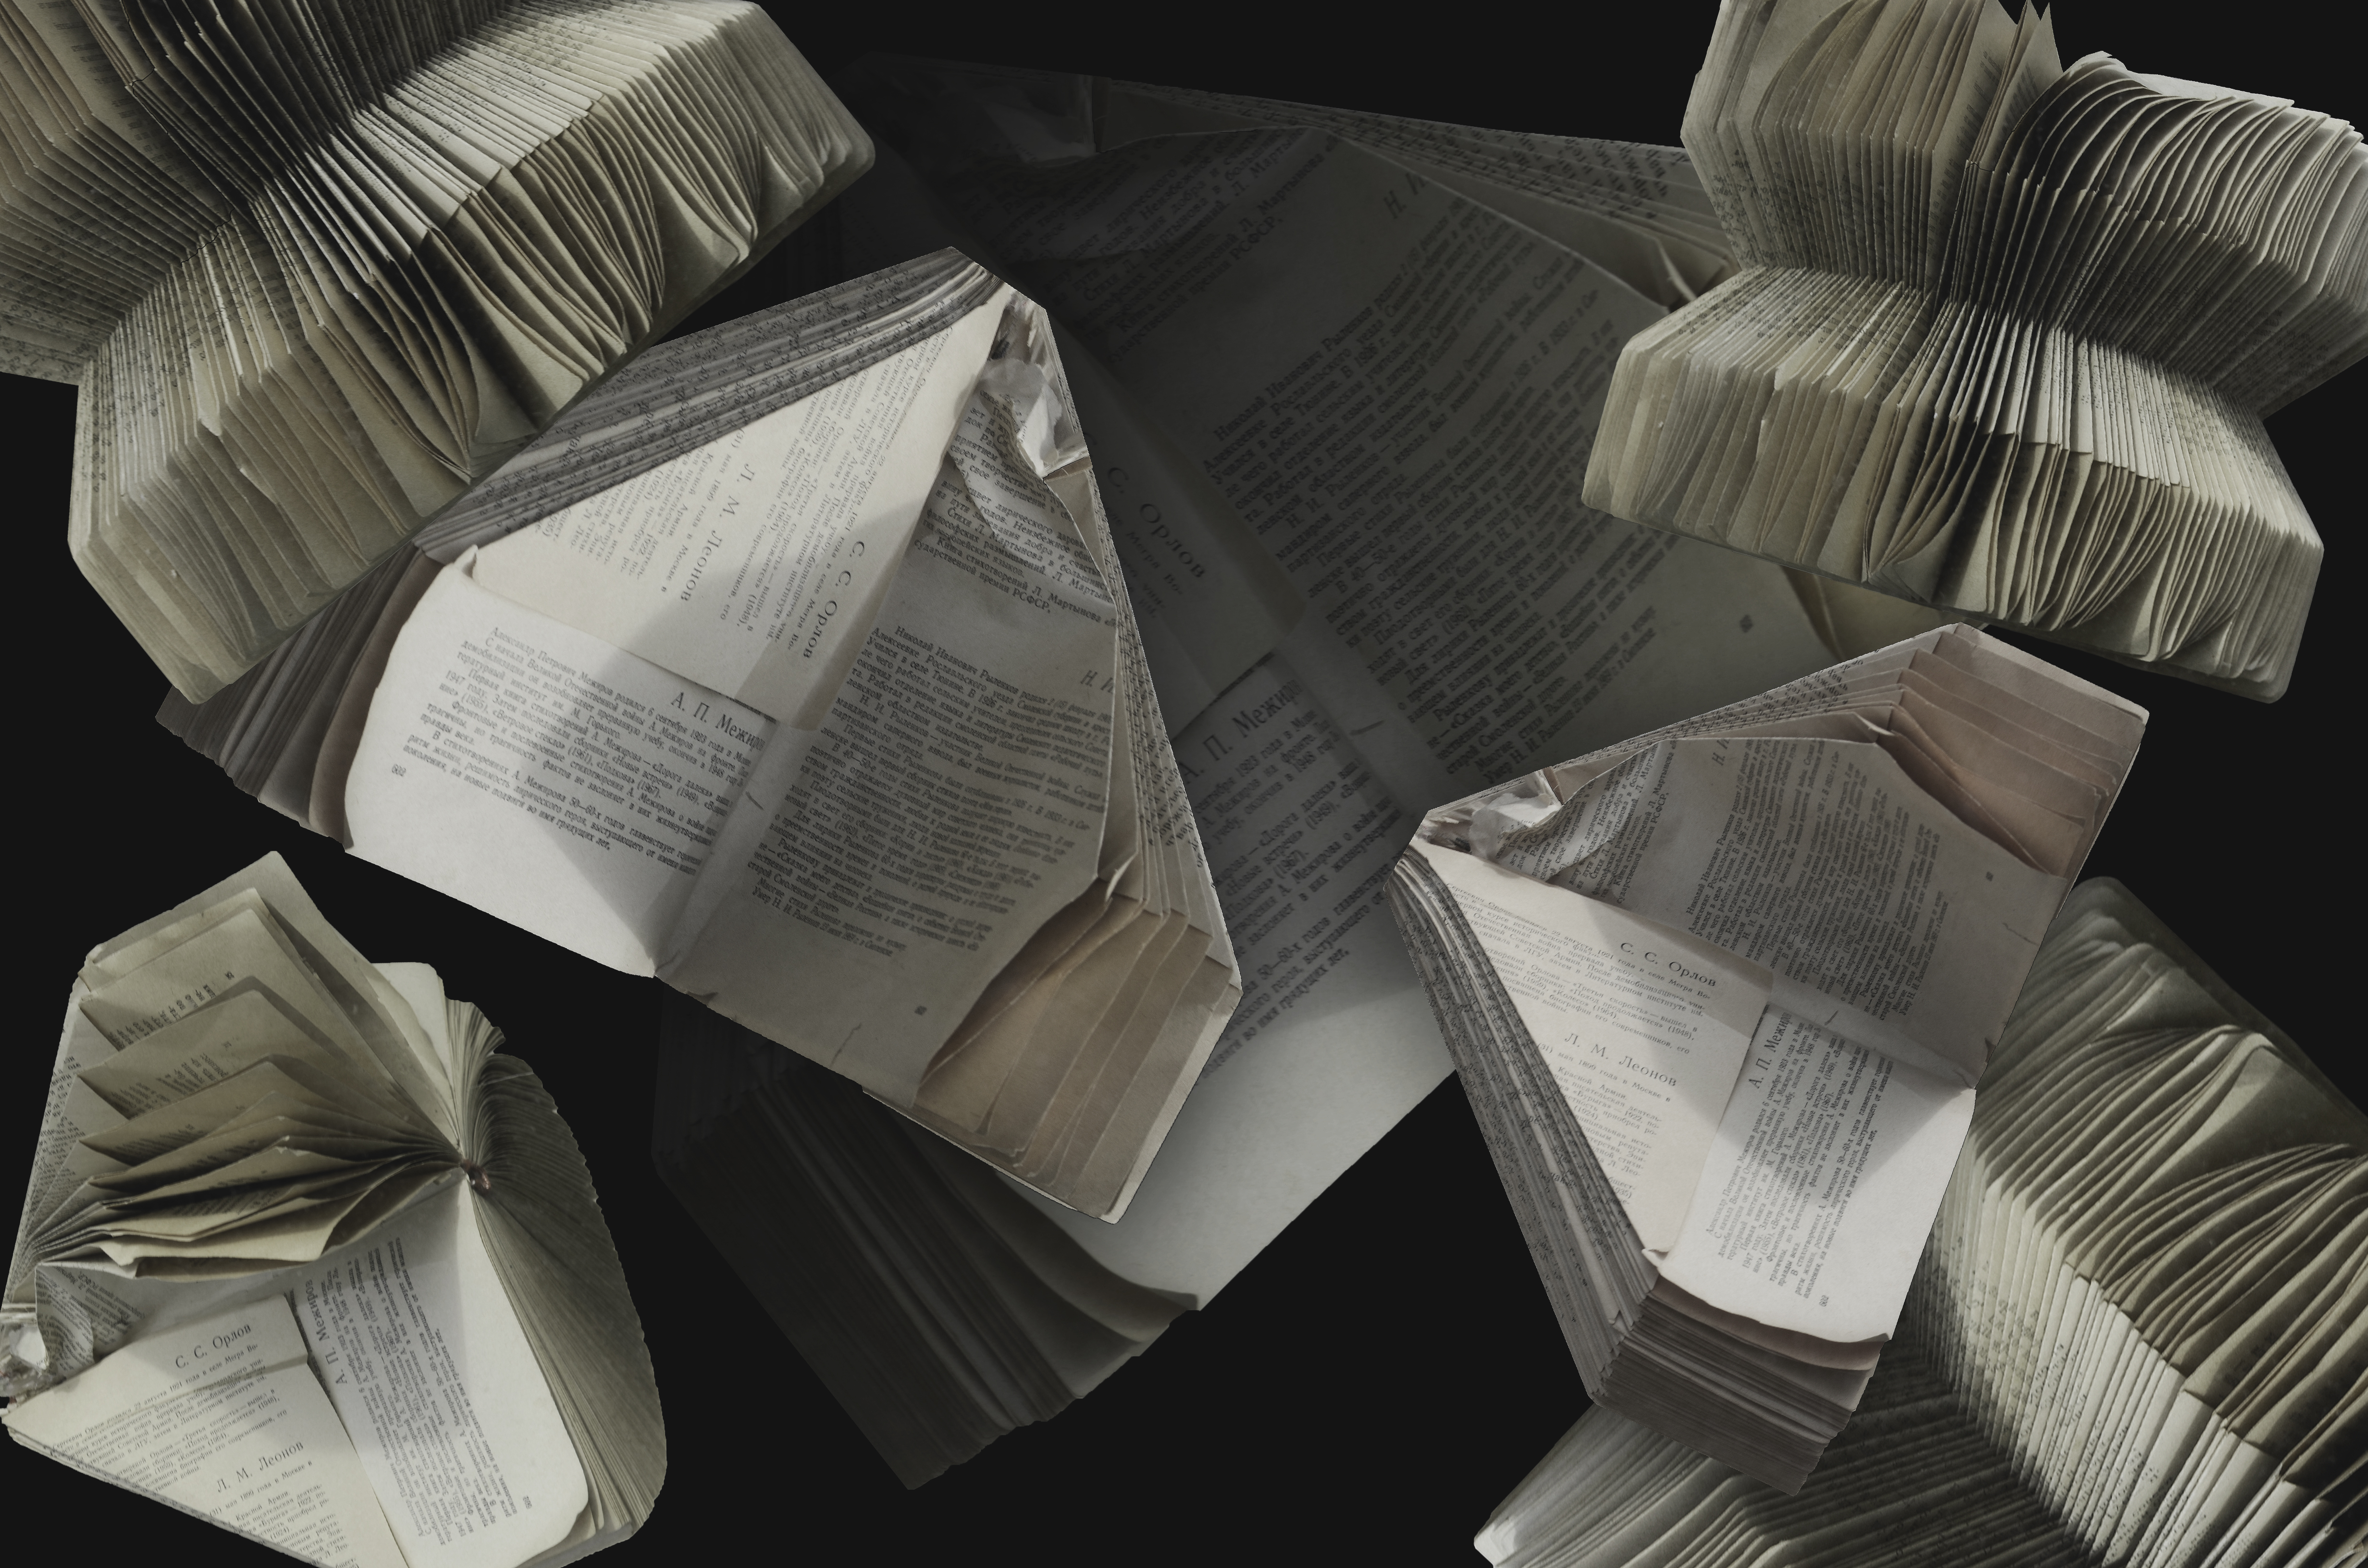 Books With Folded Pages